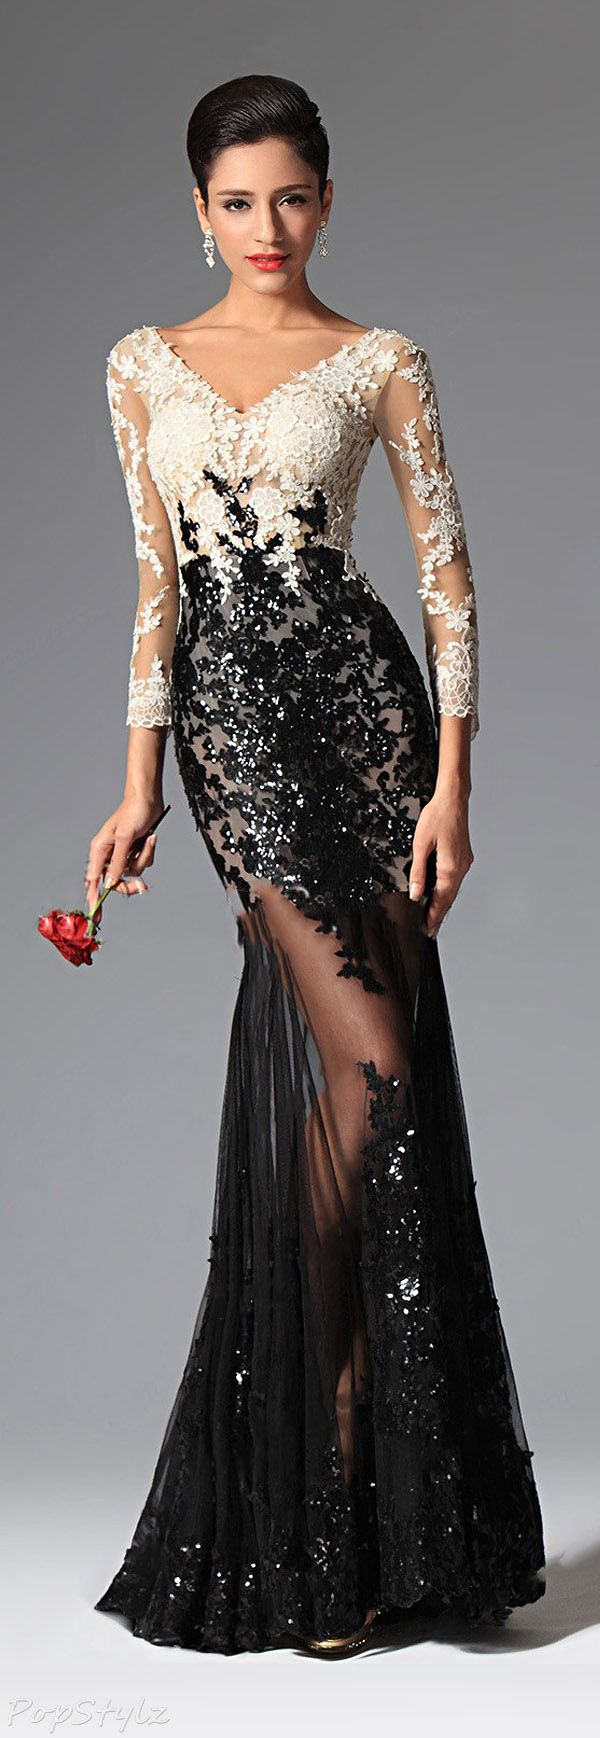 17 Best ideas about Elegant Evening Gowns on Pinterest | Black ...